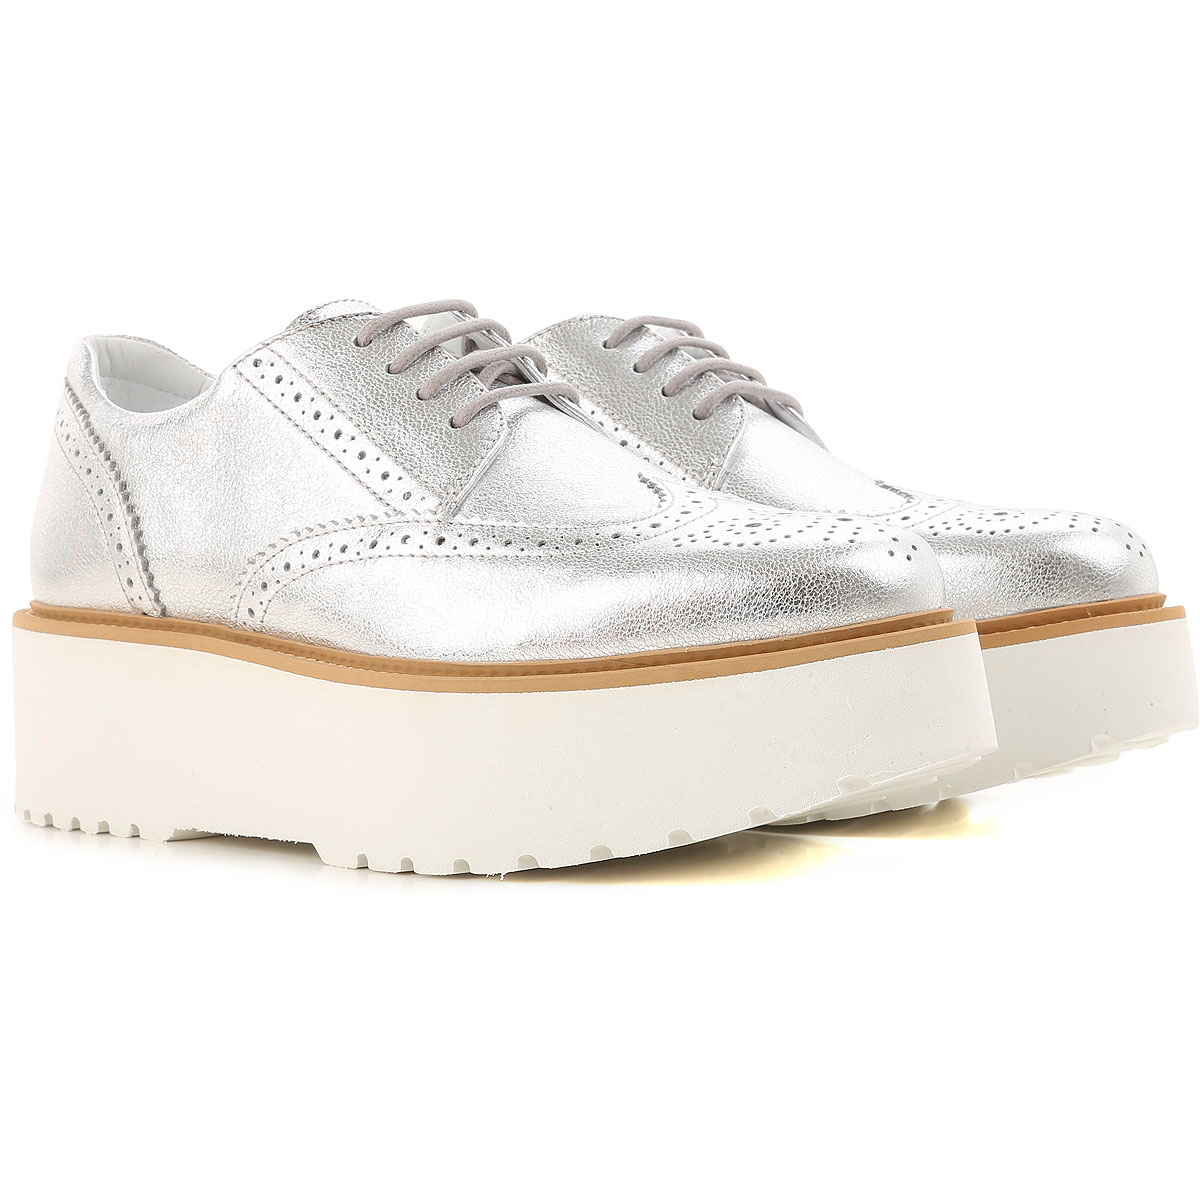 Hogan Wedges for Women in Outlet Silver Canada - GOOFASH - Womens HOUSE SHOES